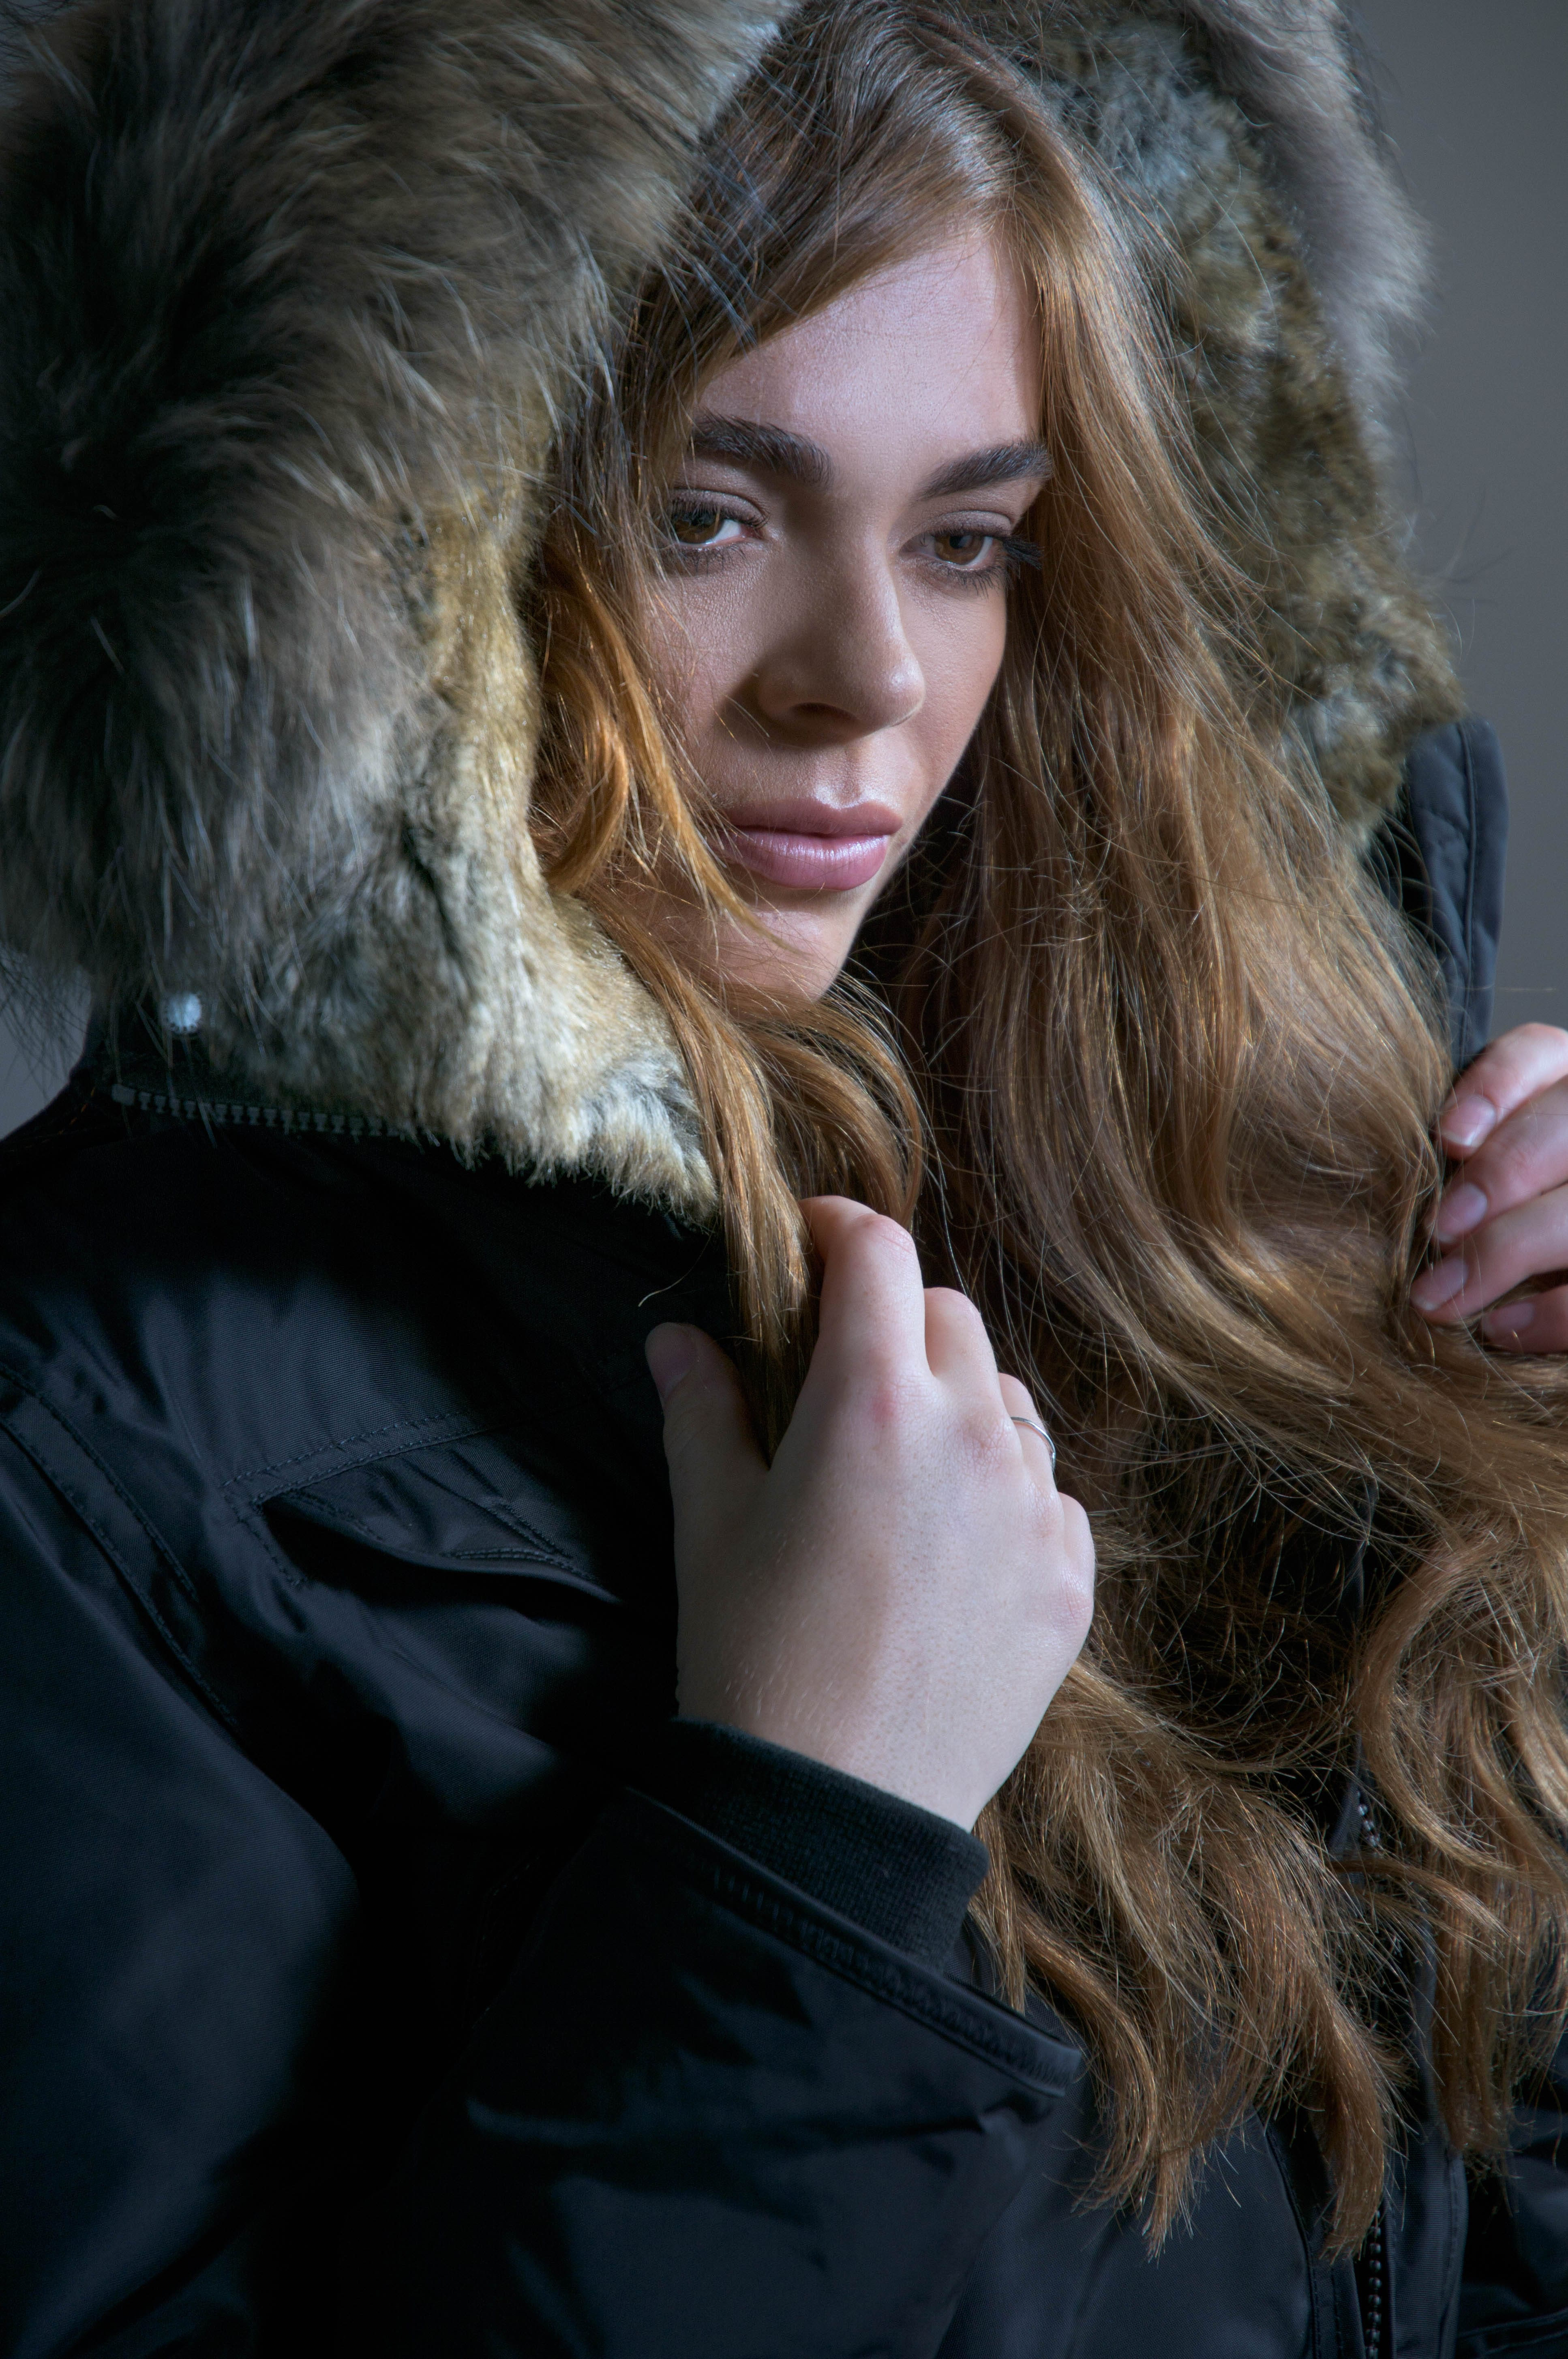 An Interview with Fashion Model Bethany Bennett